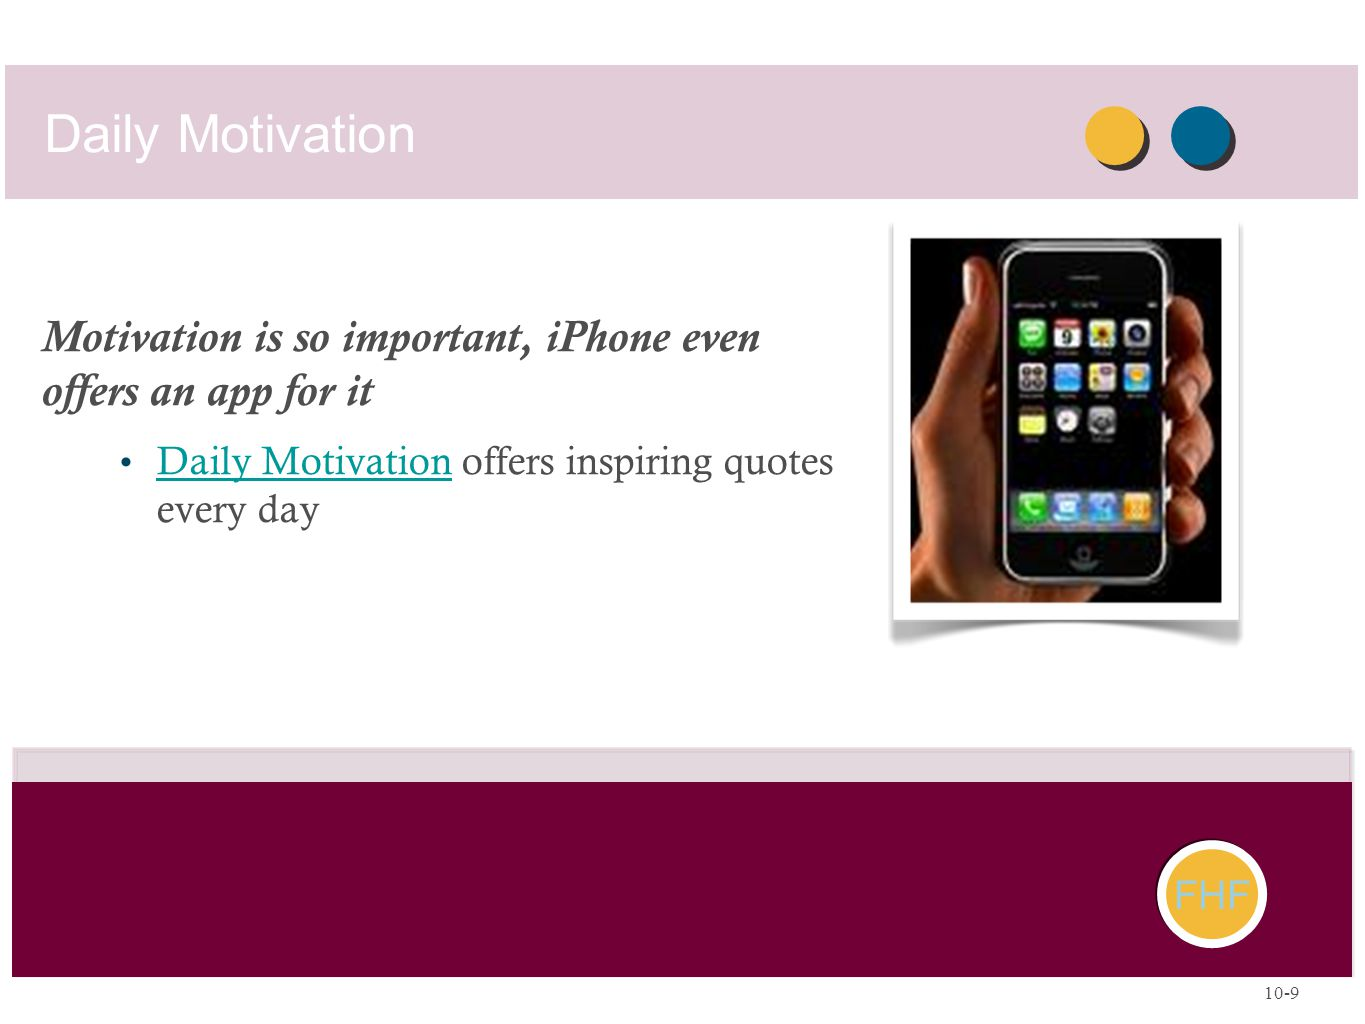 Daily Motivation Motivation is so important, iPhone even offers an app for it. Daily Motivation offers inspiring quotes every day.